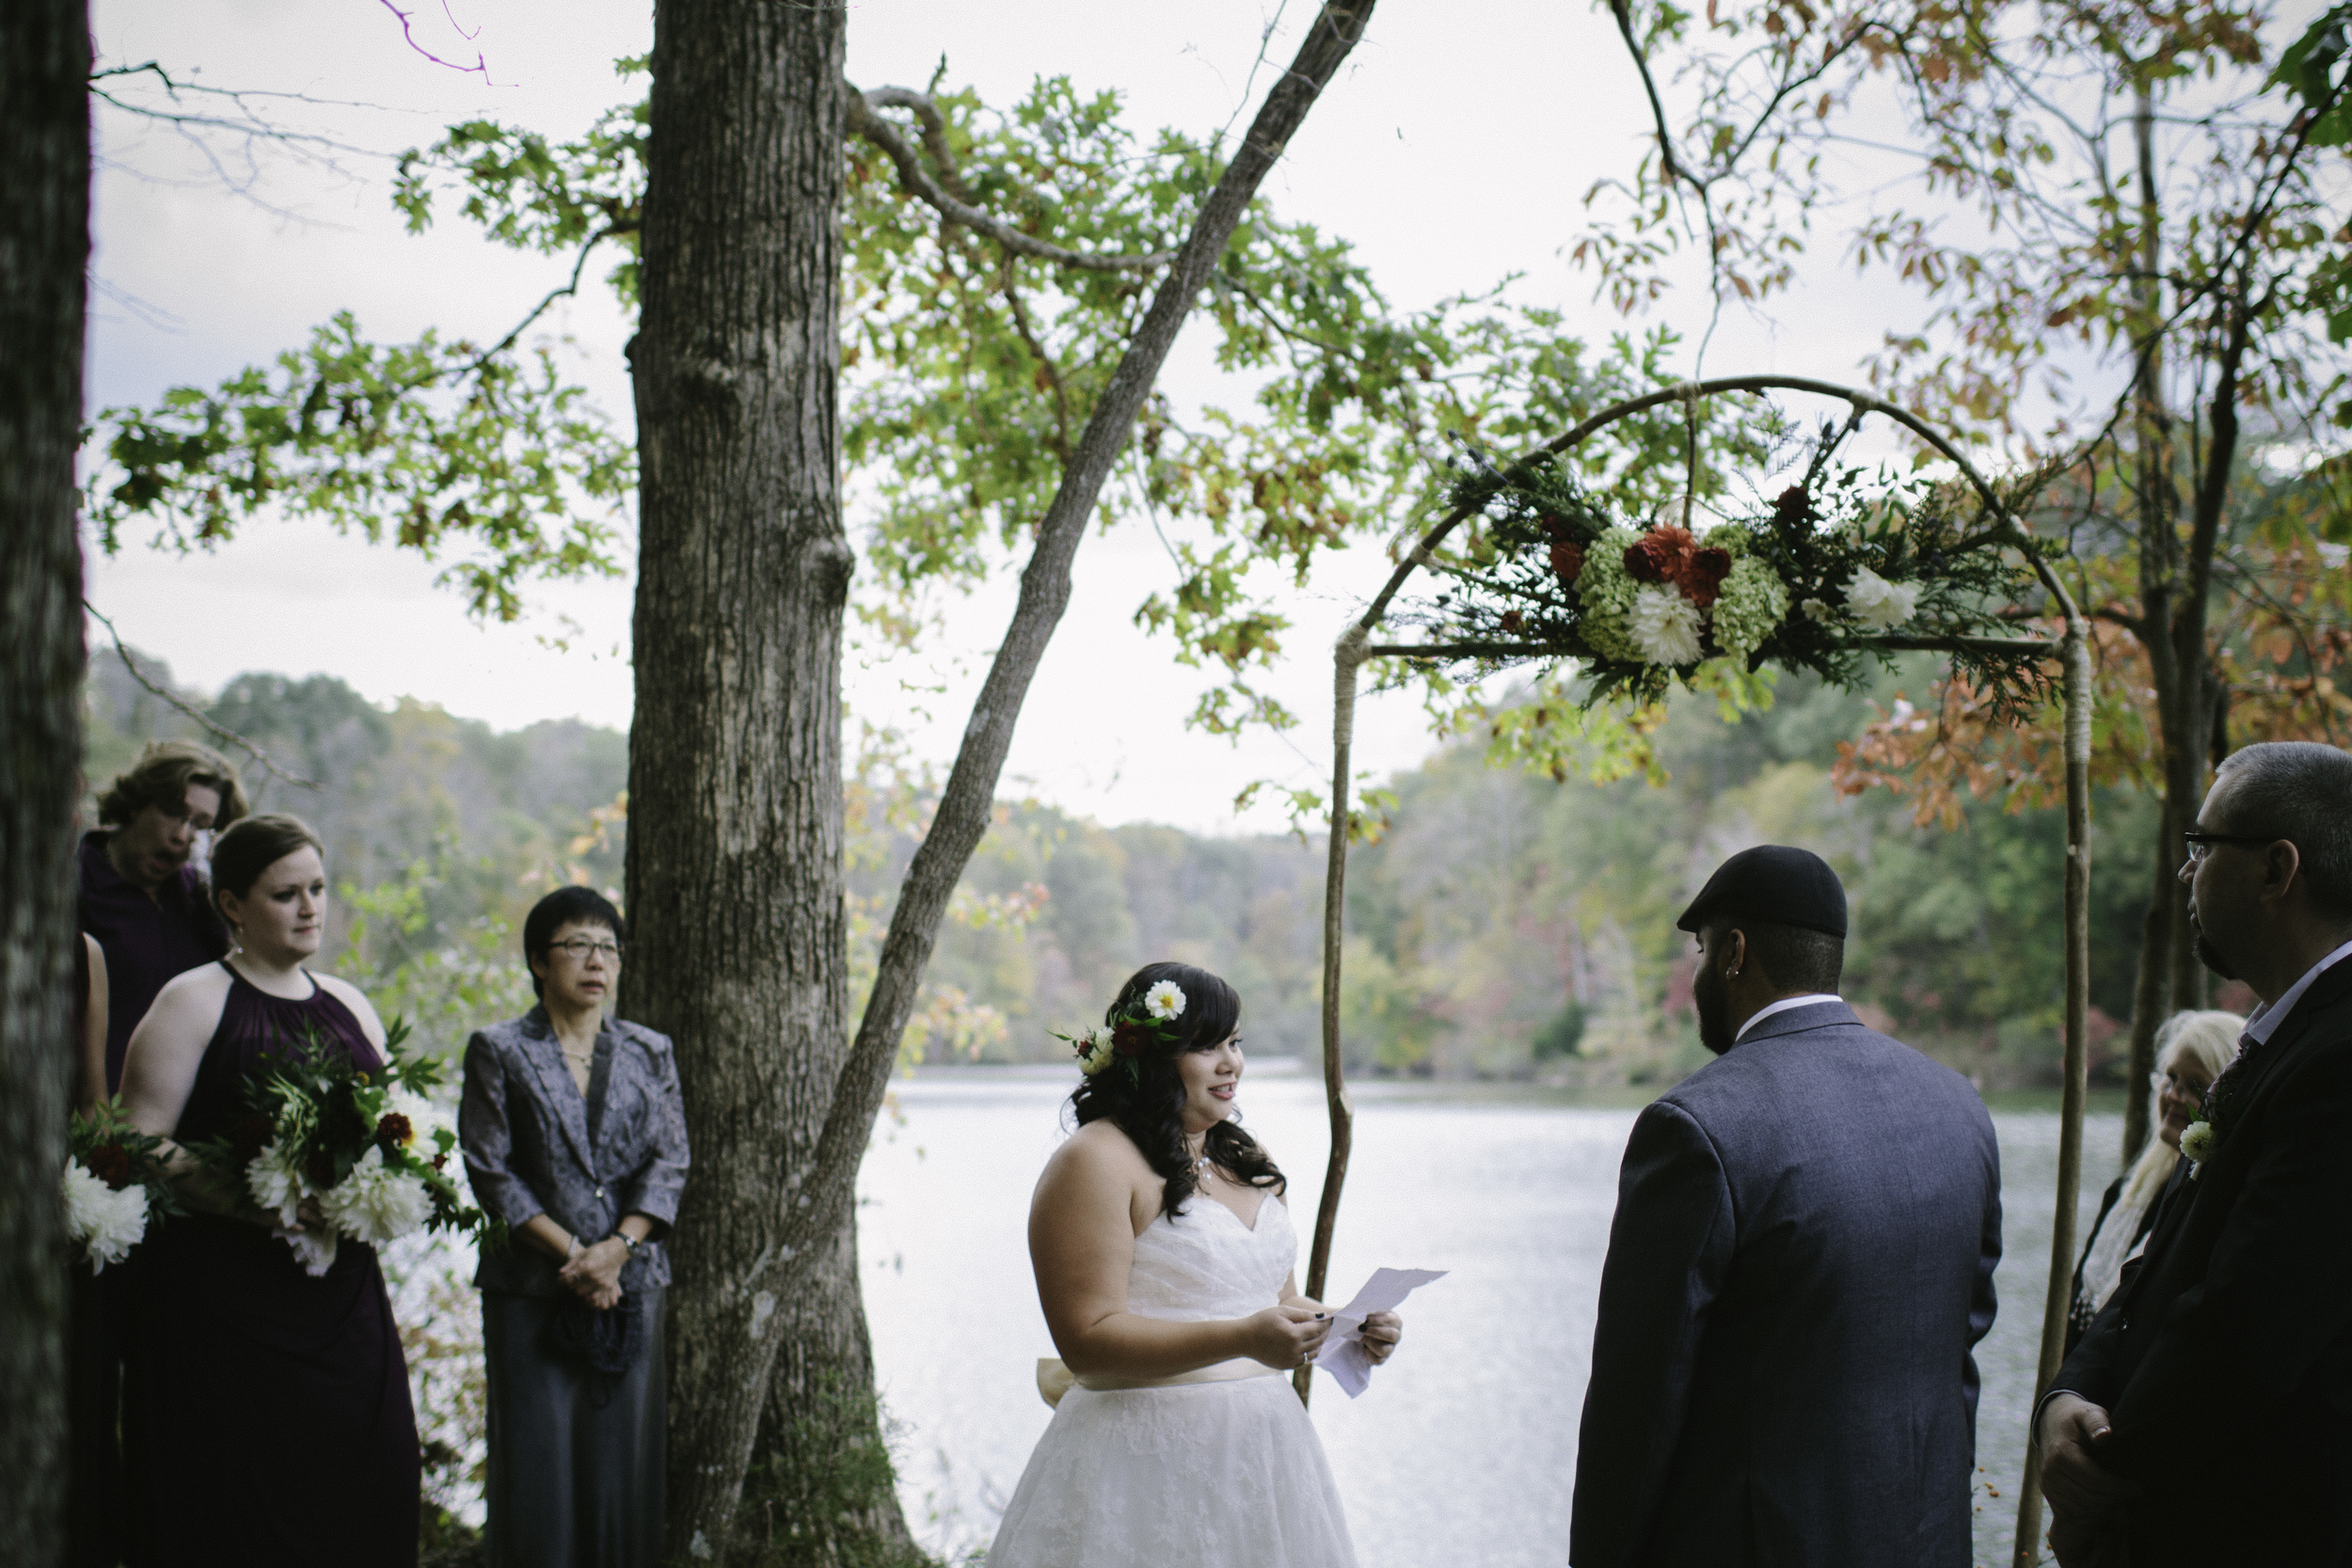 Locklane Weddings & Events, Intimate fall wedding at a Tennessee state park | Photo by Whitney Madlom